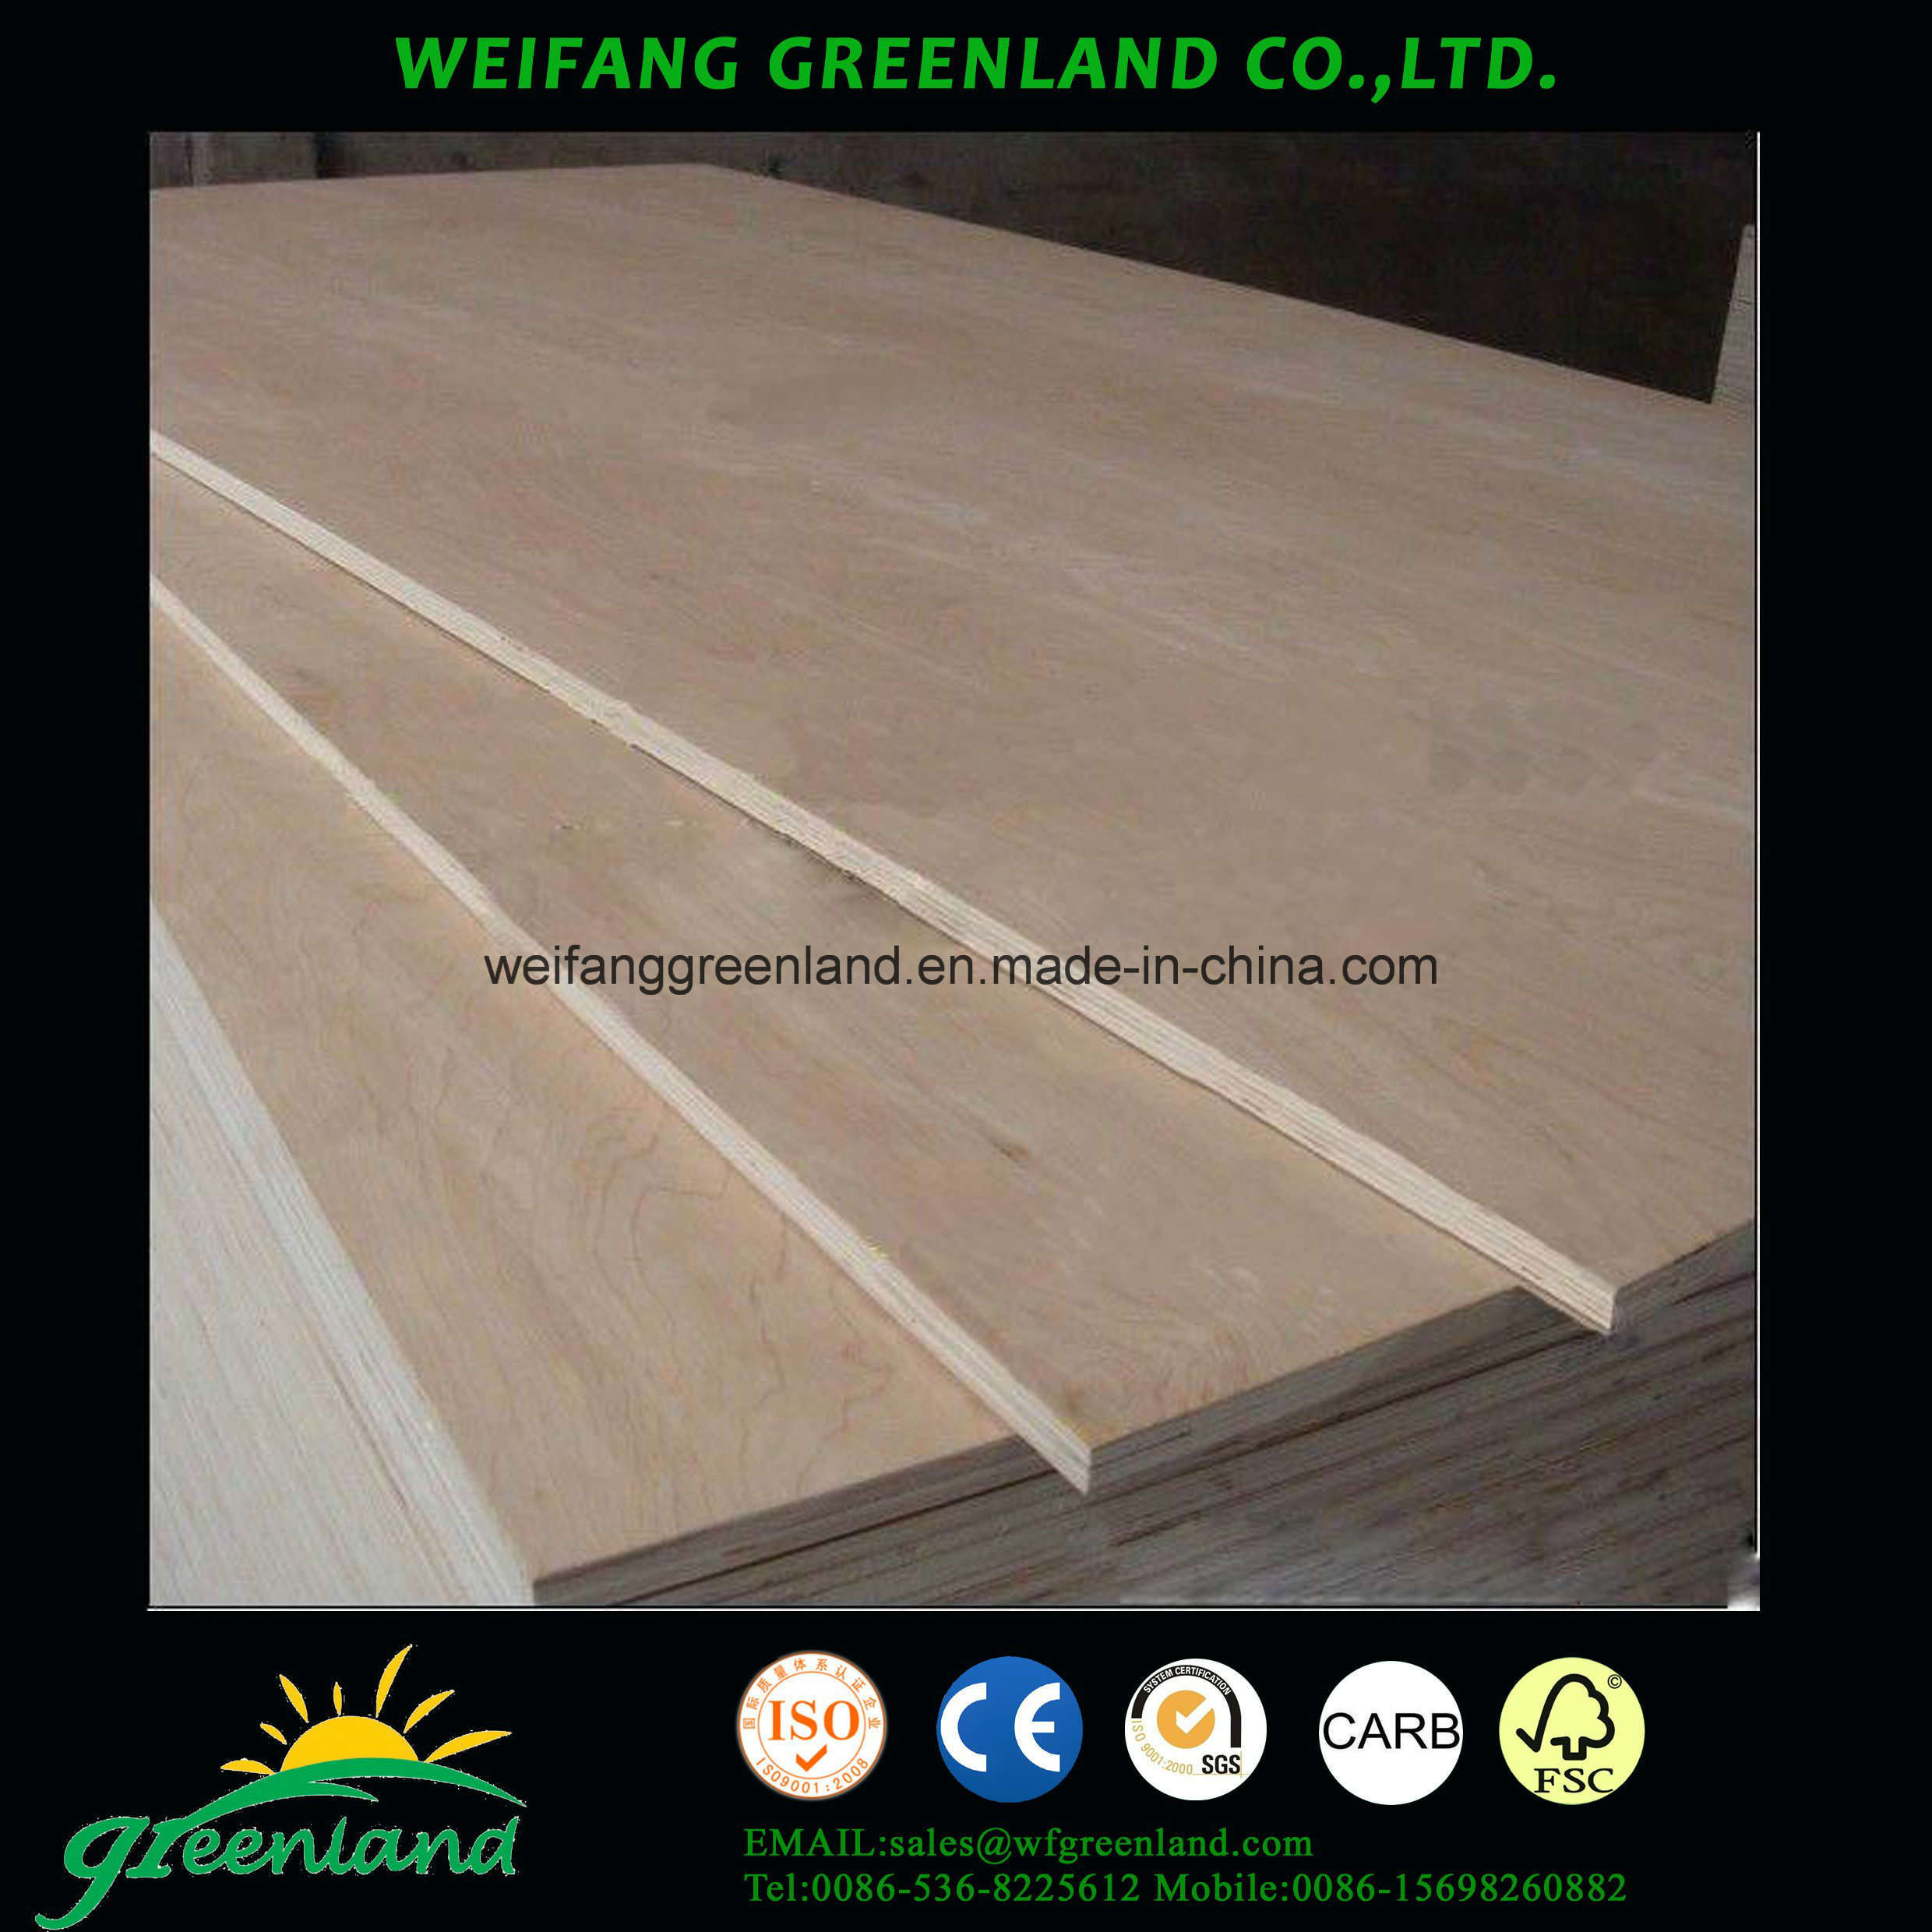 Hardwood Core Plywood for Furniture, Construction, Packing